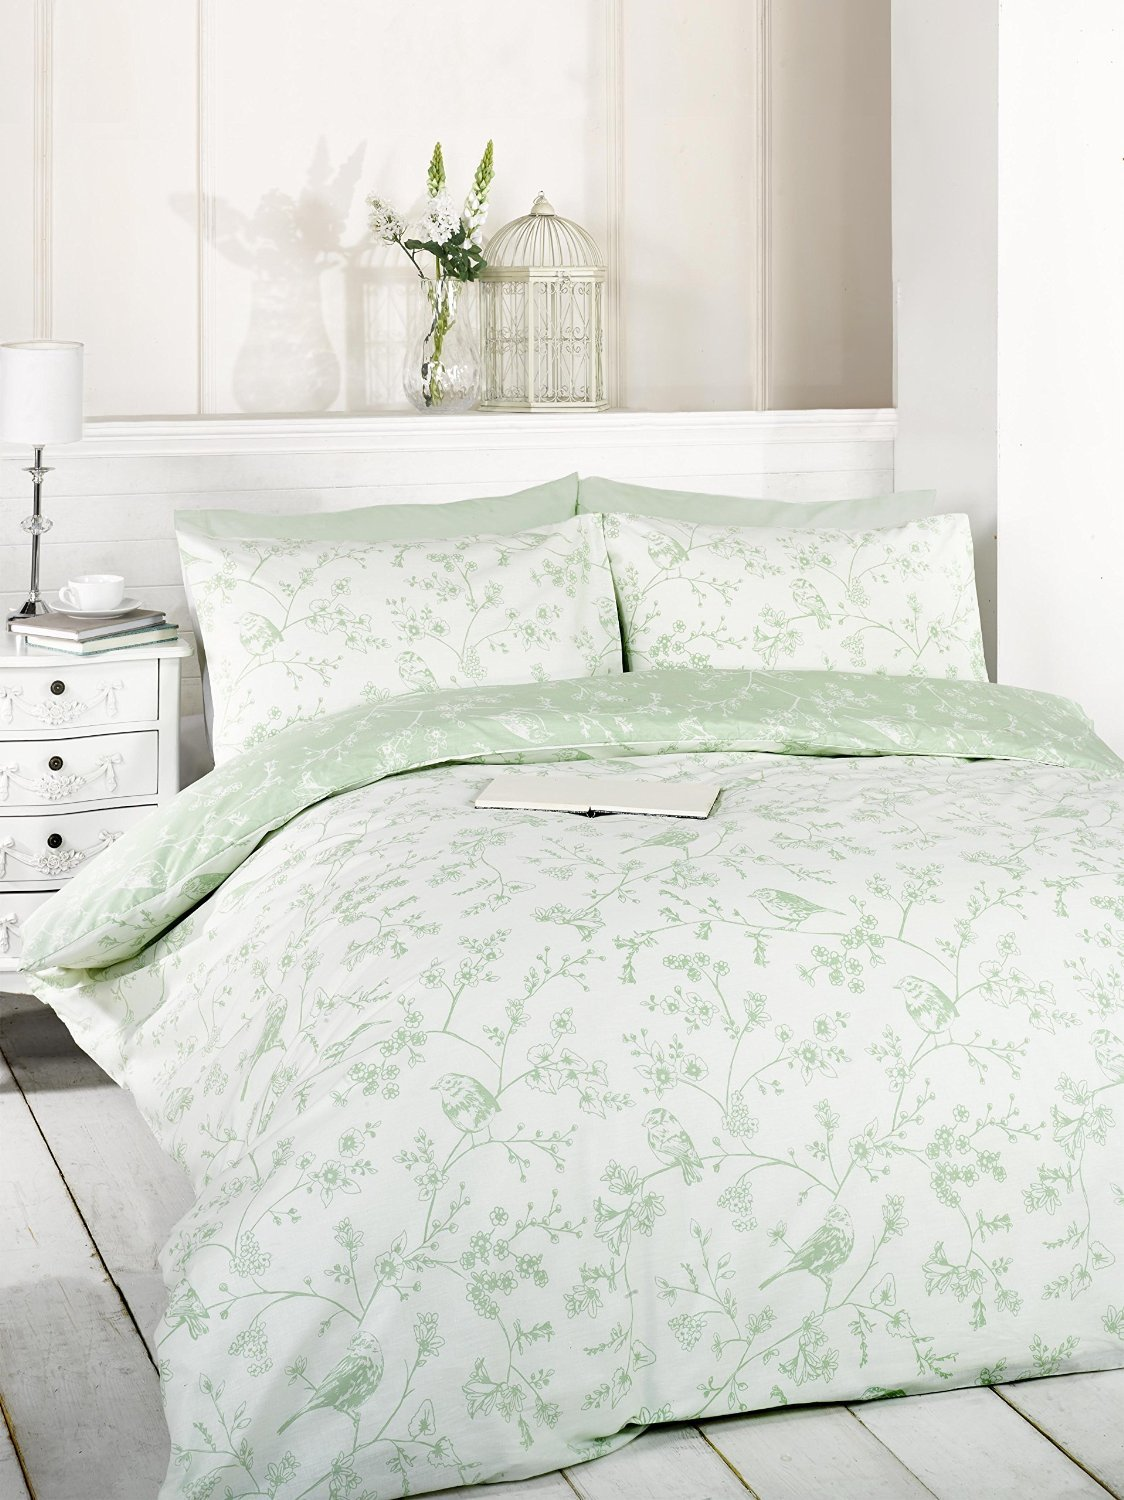 attractive bedroom sateen design cover duvet coral with regard seafoam blue echo brilliant coverlet reversible for amazing property floral size great guinevere green designs quilted king to set cotton